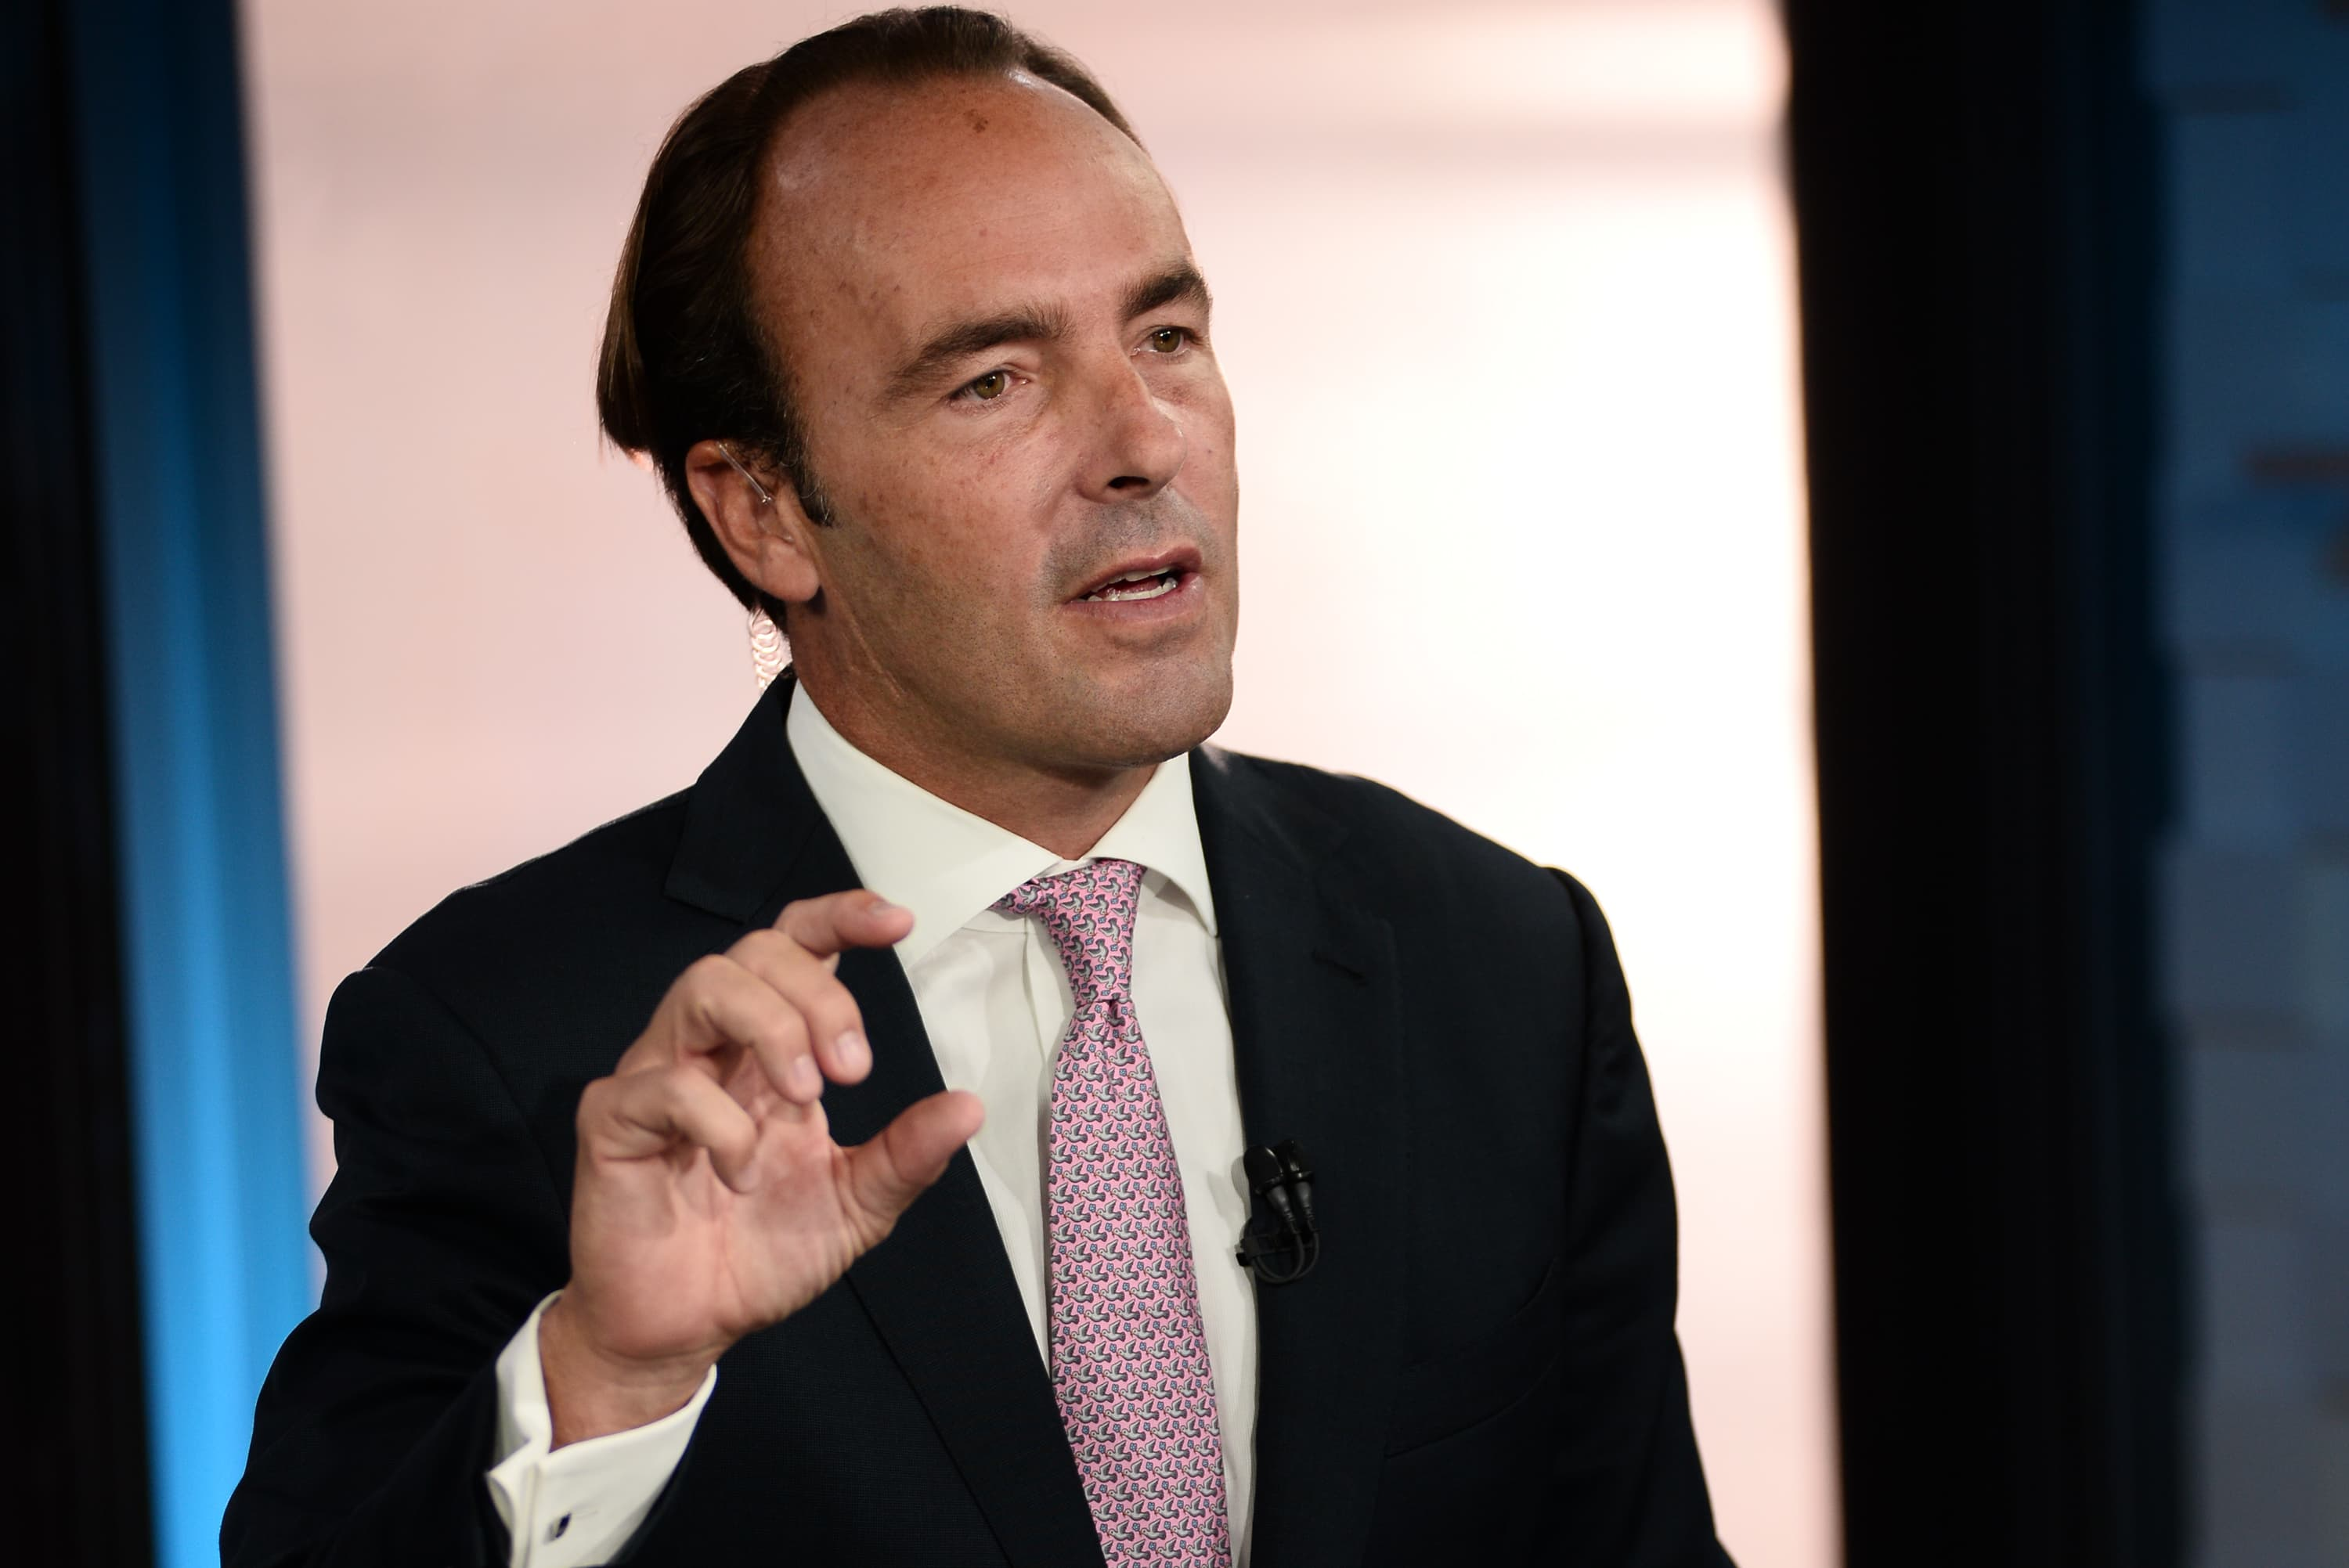 Kyle Bass: China's currency would collapse 30% to 40% if they stopped supporting it